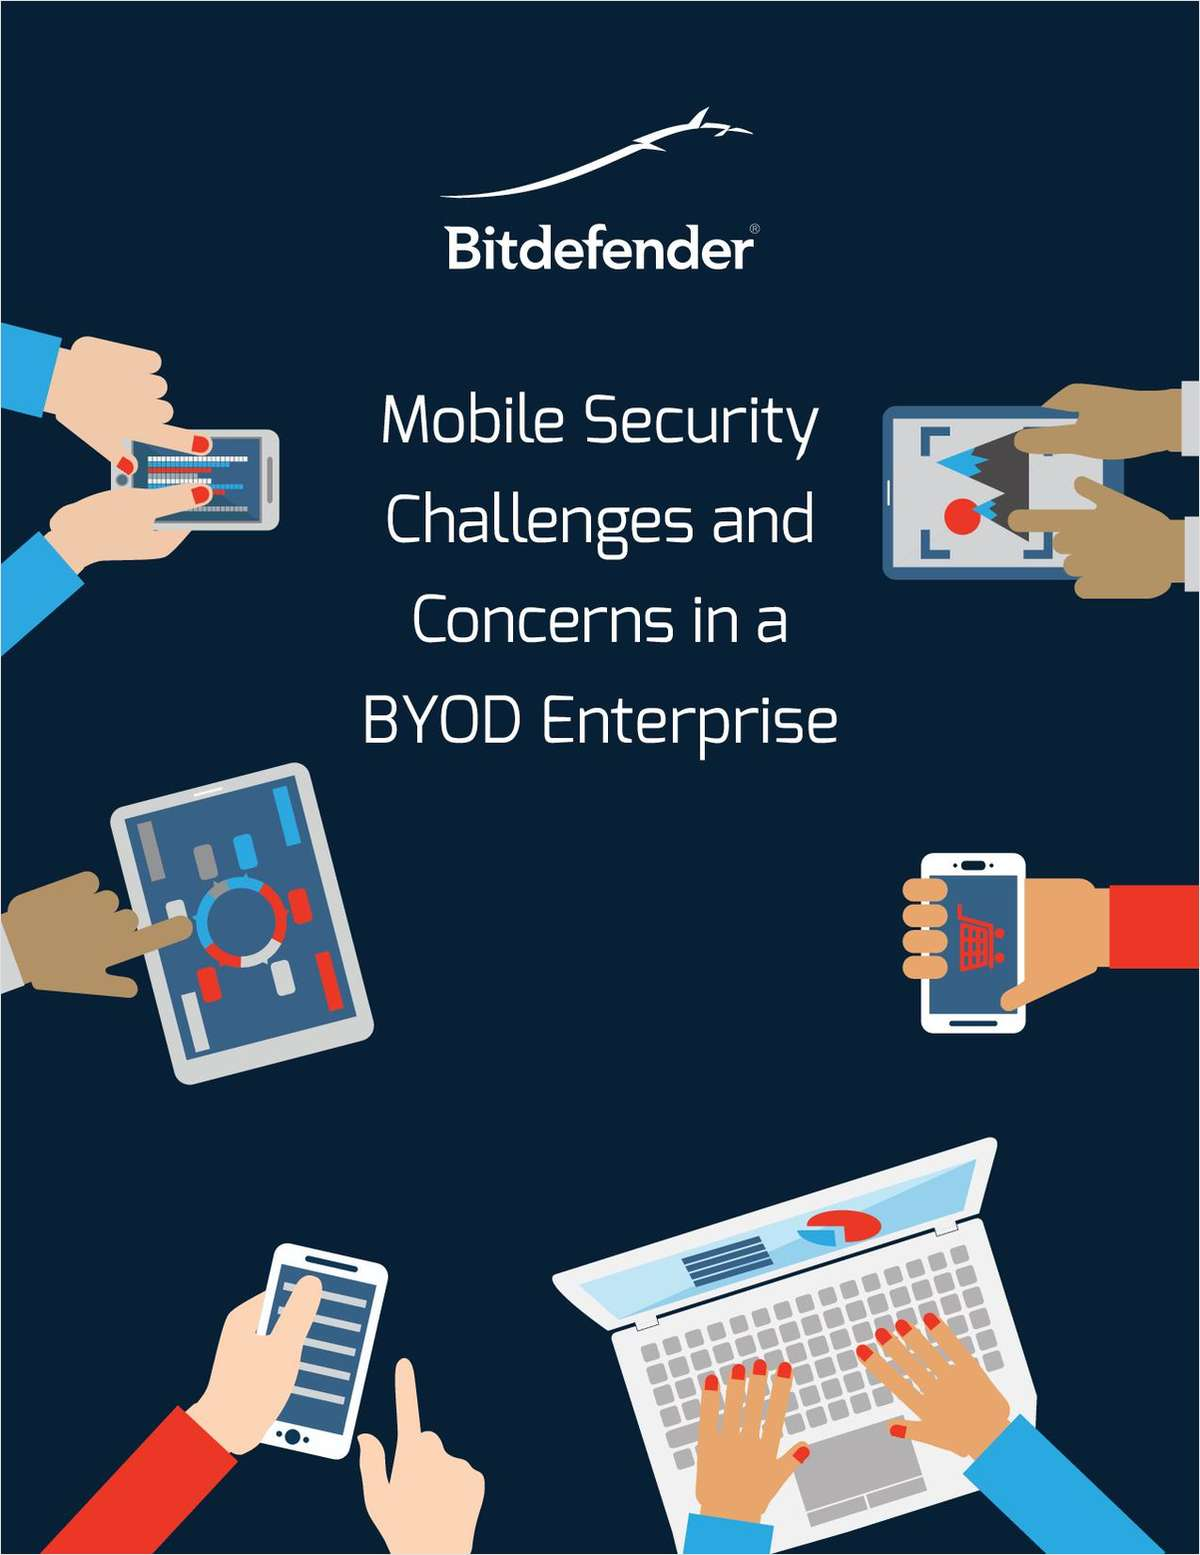 Mobile Security Challenges & Concerns in a BYOD Enterprise